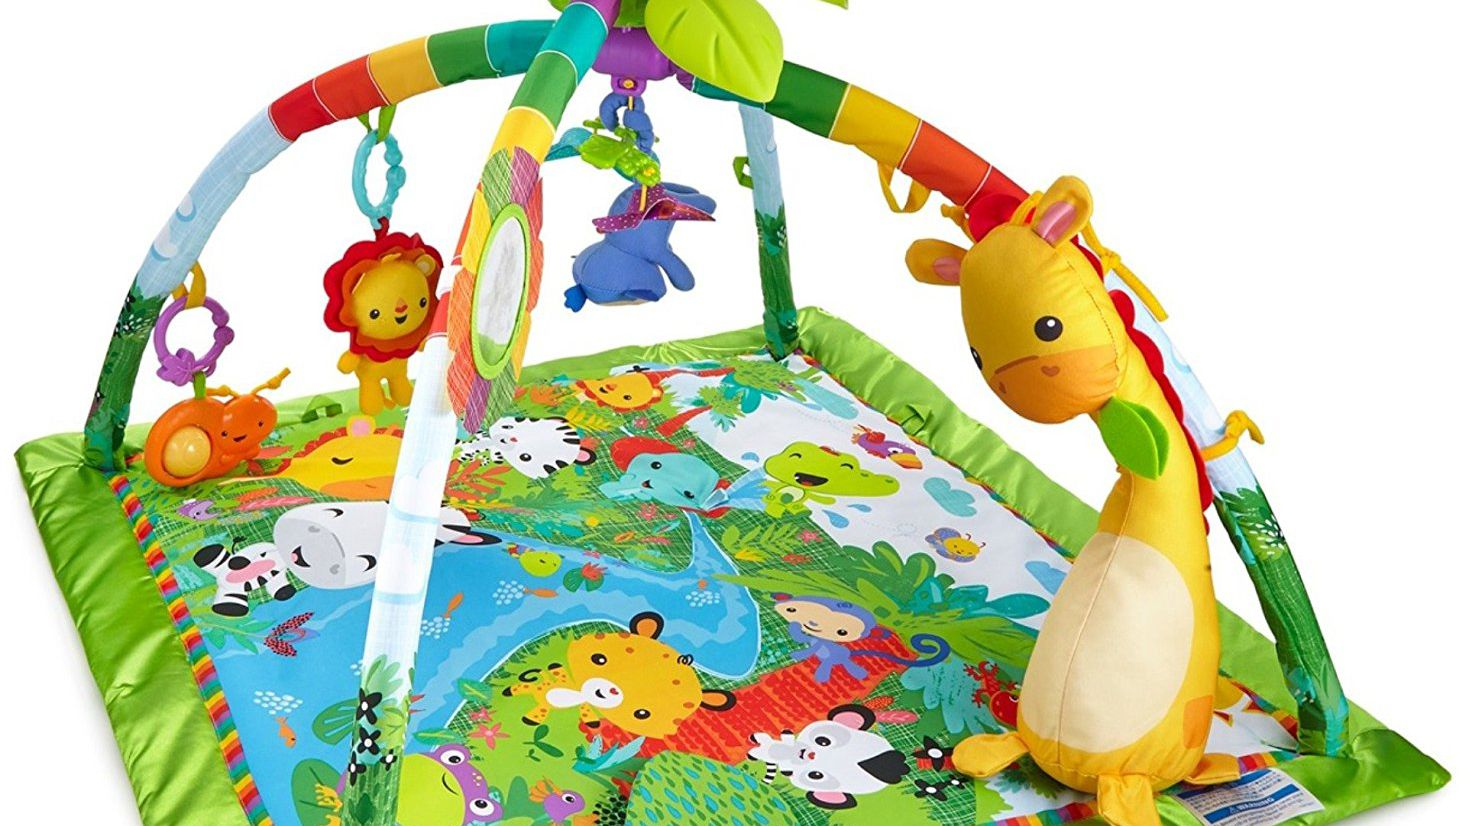 The Best Baby Play Gyms Of 2020